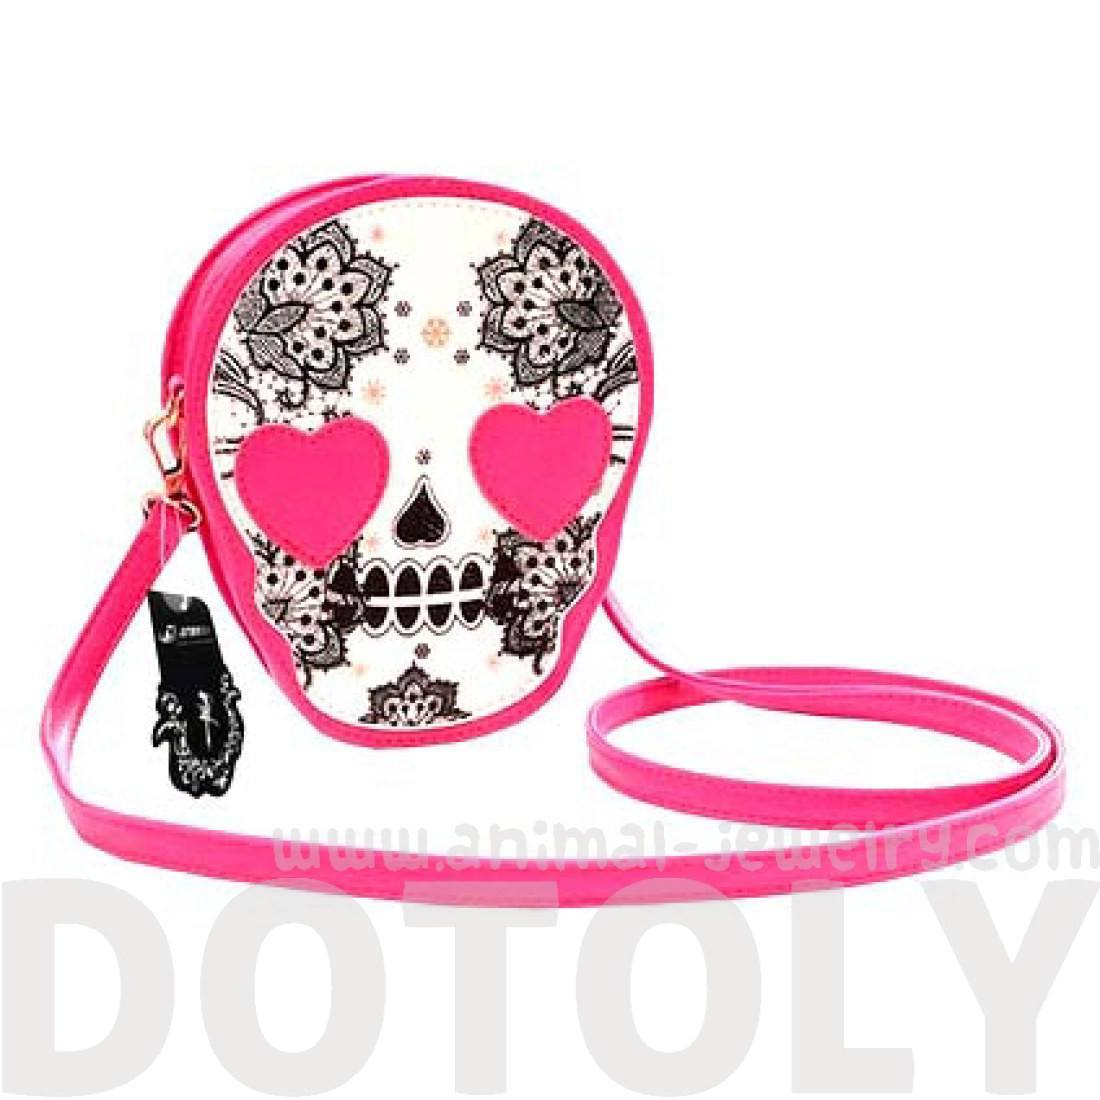 Skeleton Skull with Heart Shaped Eyes Shaped xBody Bag